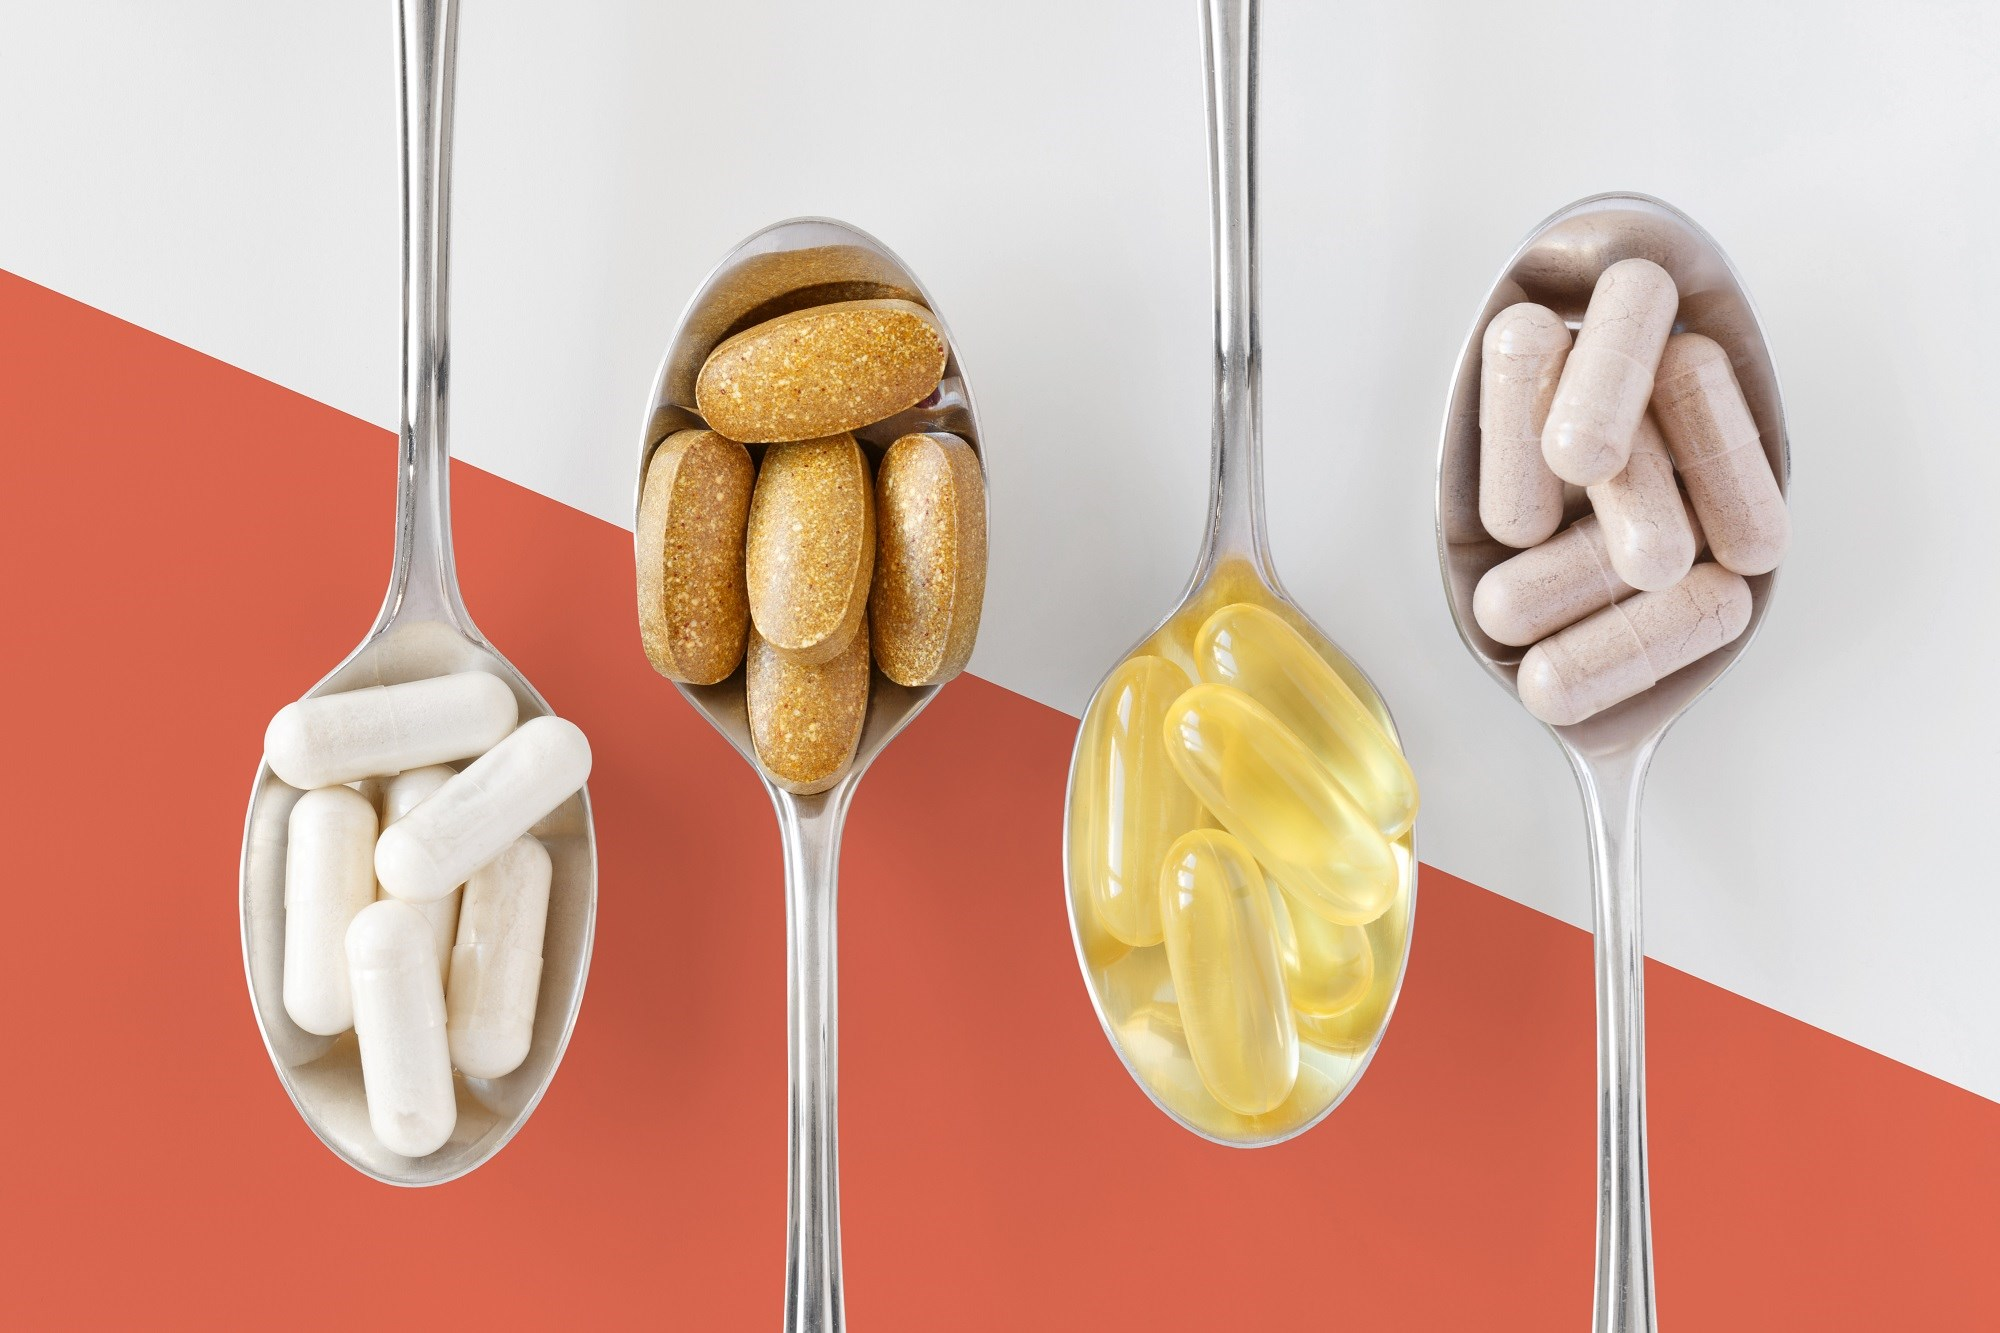 Point: Dietary Supplements Can Mitigate Poor Diet, Improve Health